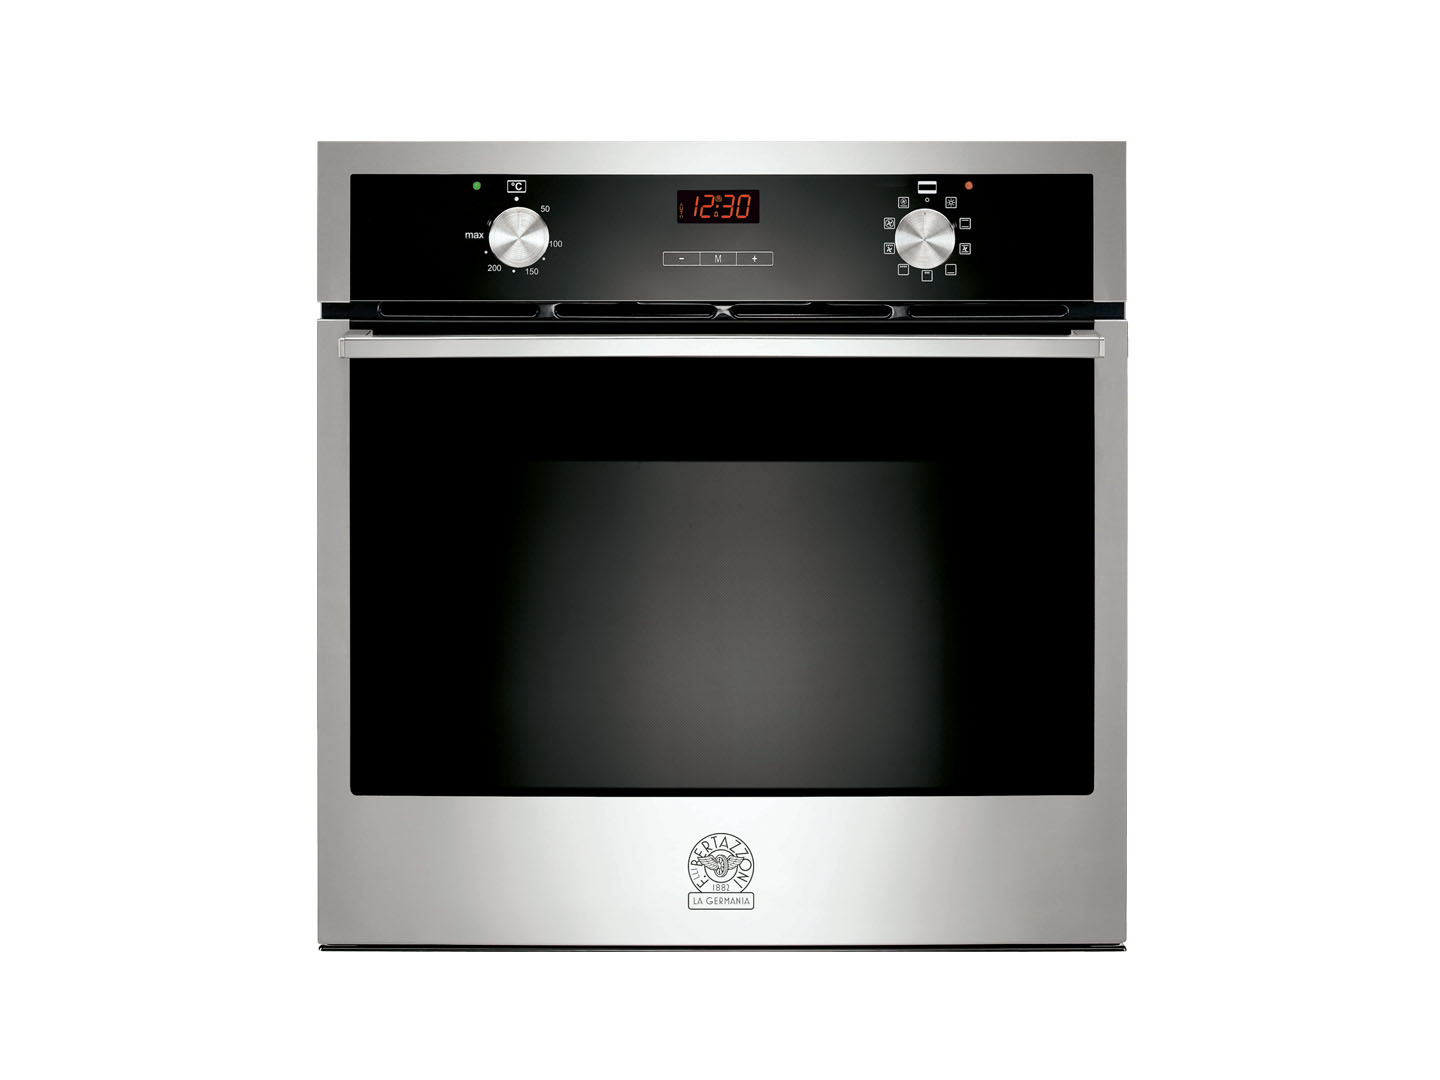 60 Electric 9-Function Oven | Bertazzoni La Germania - Stainless